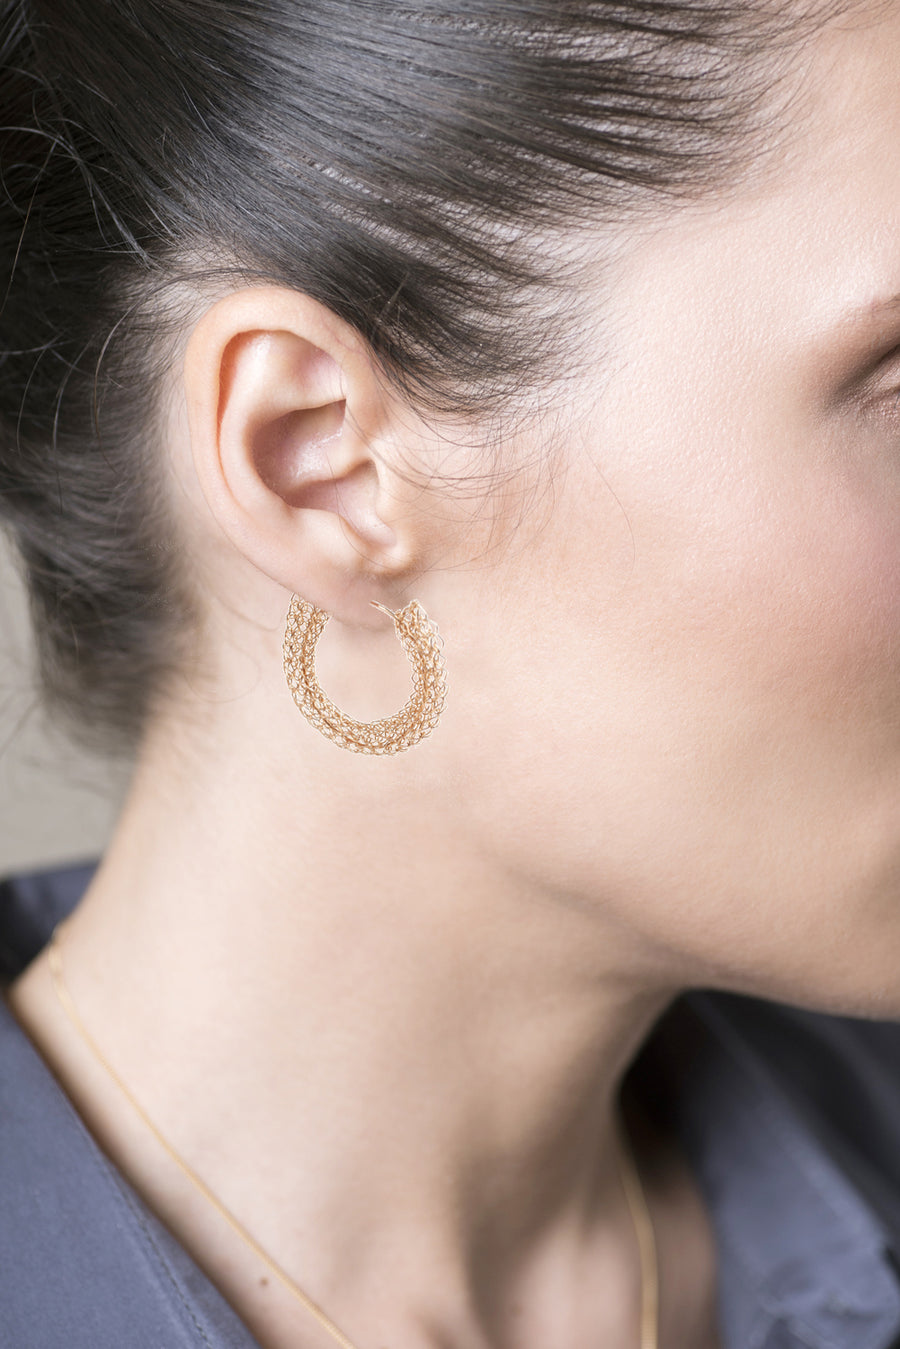 Gypsy hoop earrings, gold medium hoops